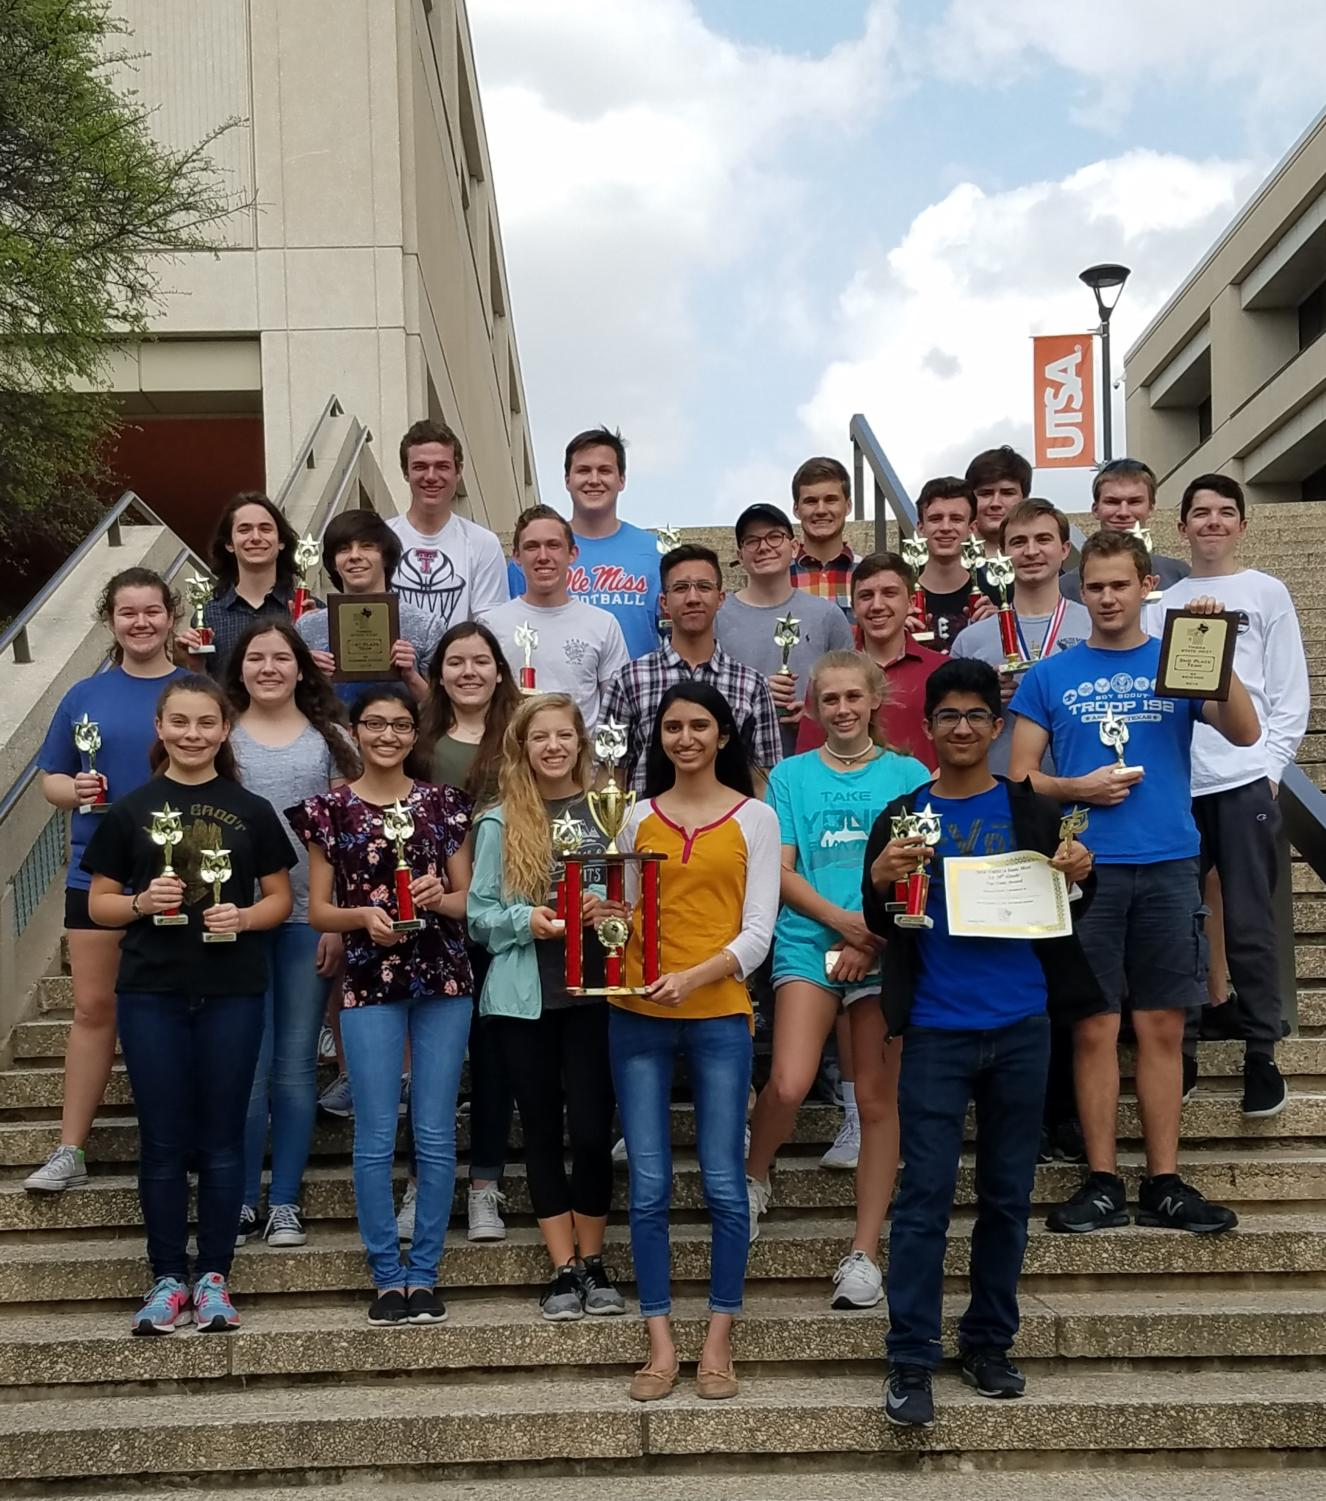 The UIL Math and Science Academic teams take their 16th consecutive TMSCA state title in San Antonio, TX over spring break. (Photo courtesy: Kimberly Kass)